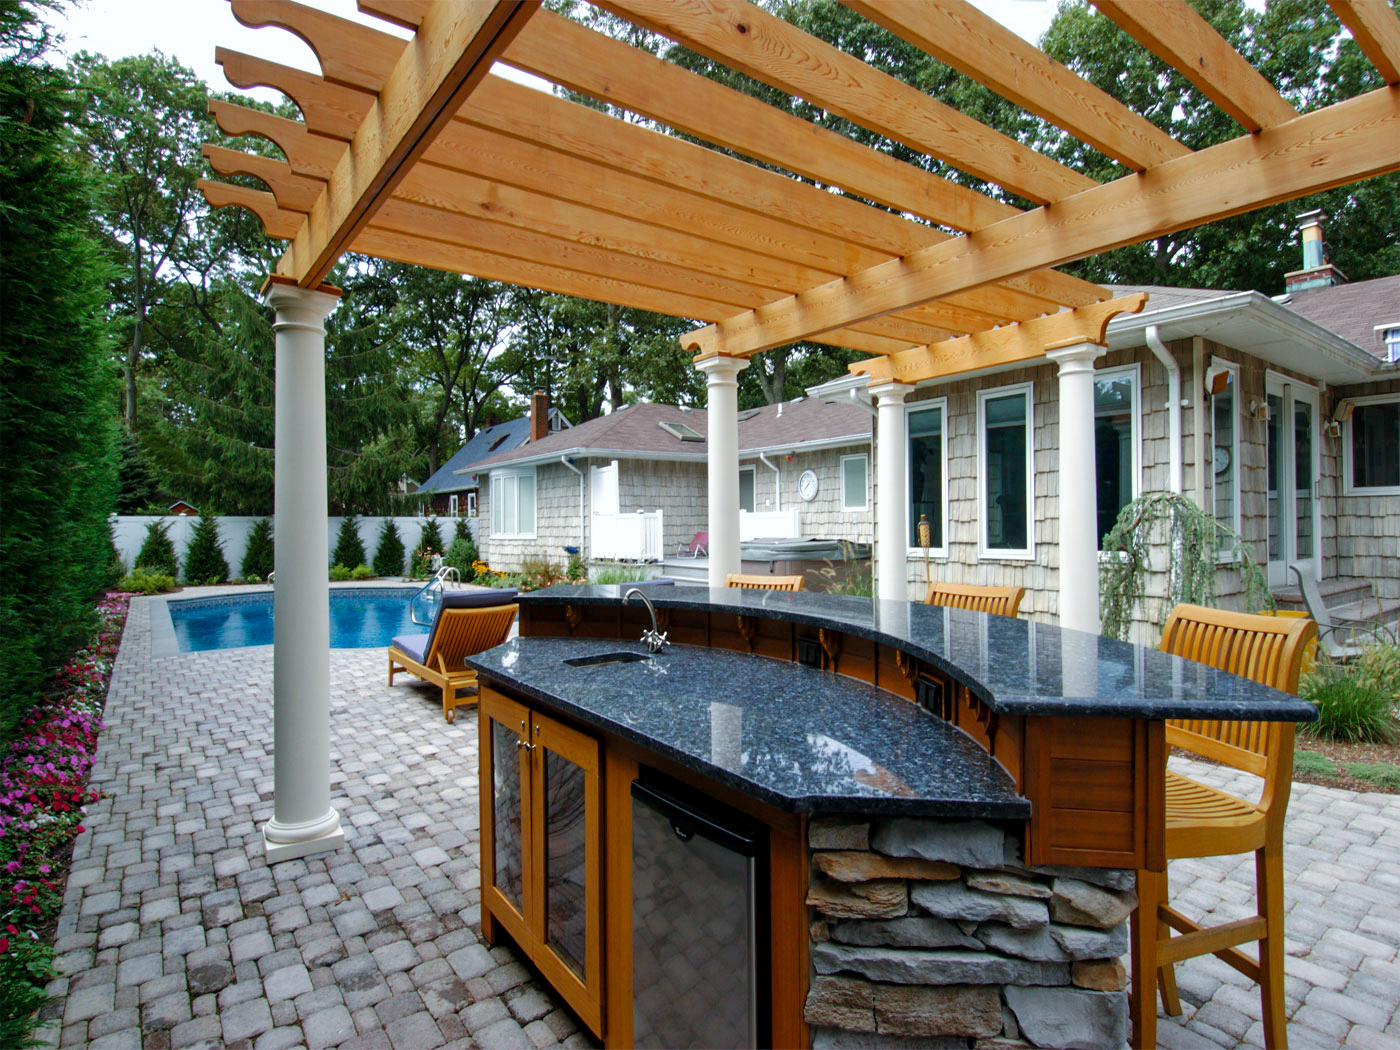 Outdoor pergola formal pool and outdoor kitchen landscaper near me South Hampton